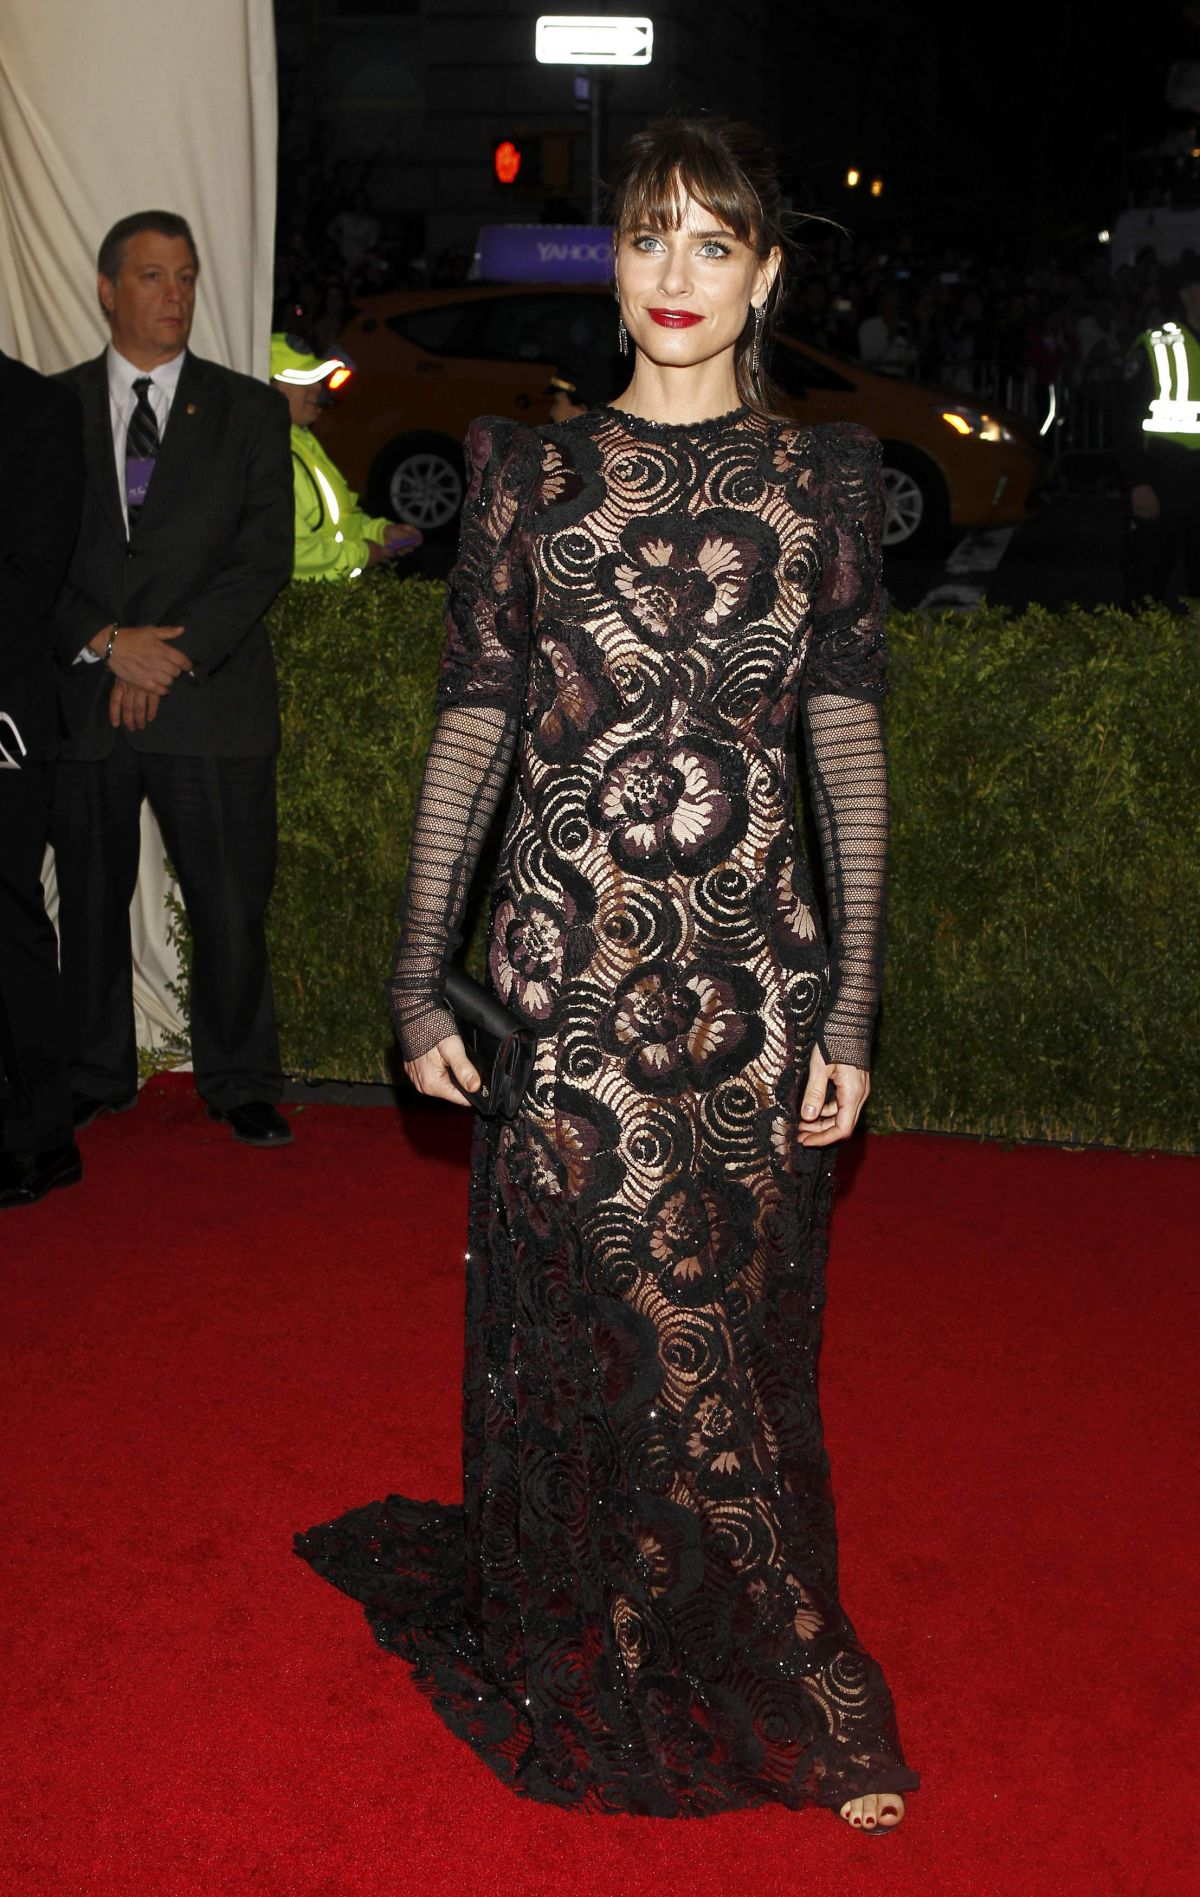 AMANDA PEET at MET Gala 2014 in New York